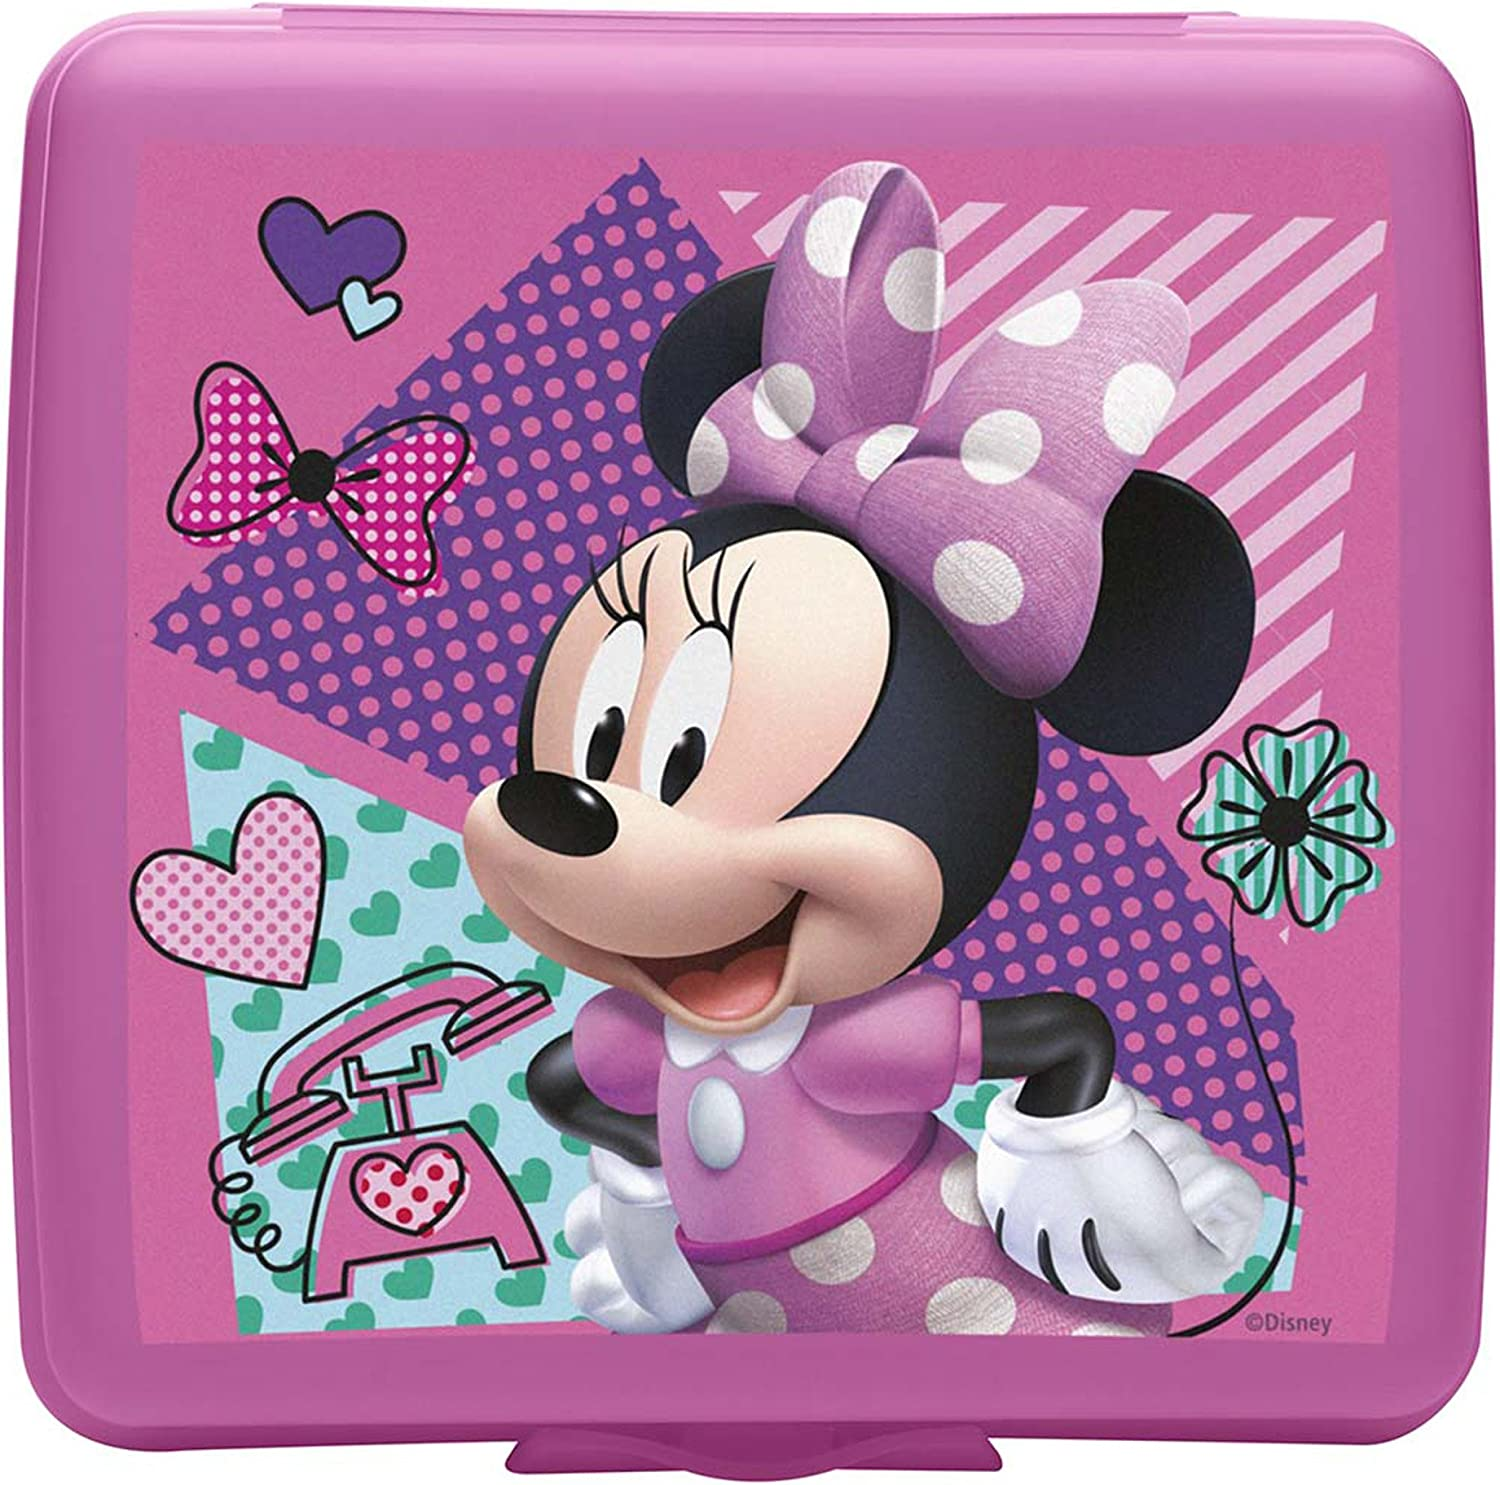 Zak Designs Minnie Mouse Plastic Sandwich Container, Mickey & Minnie Mouse